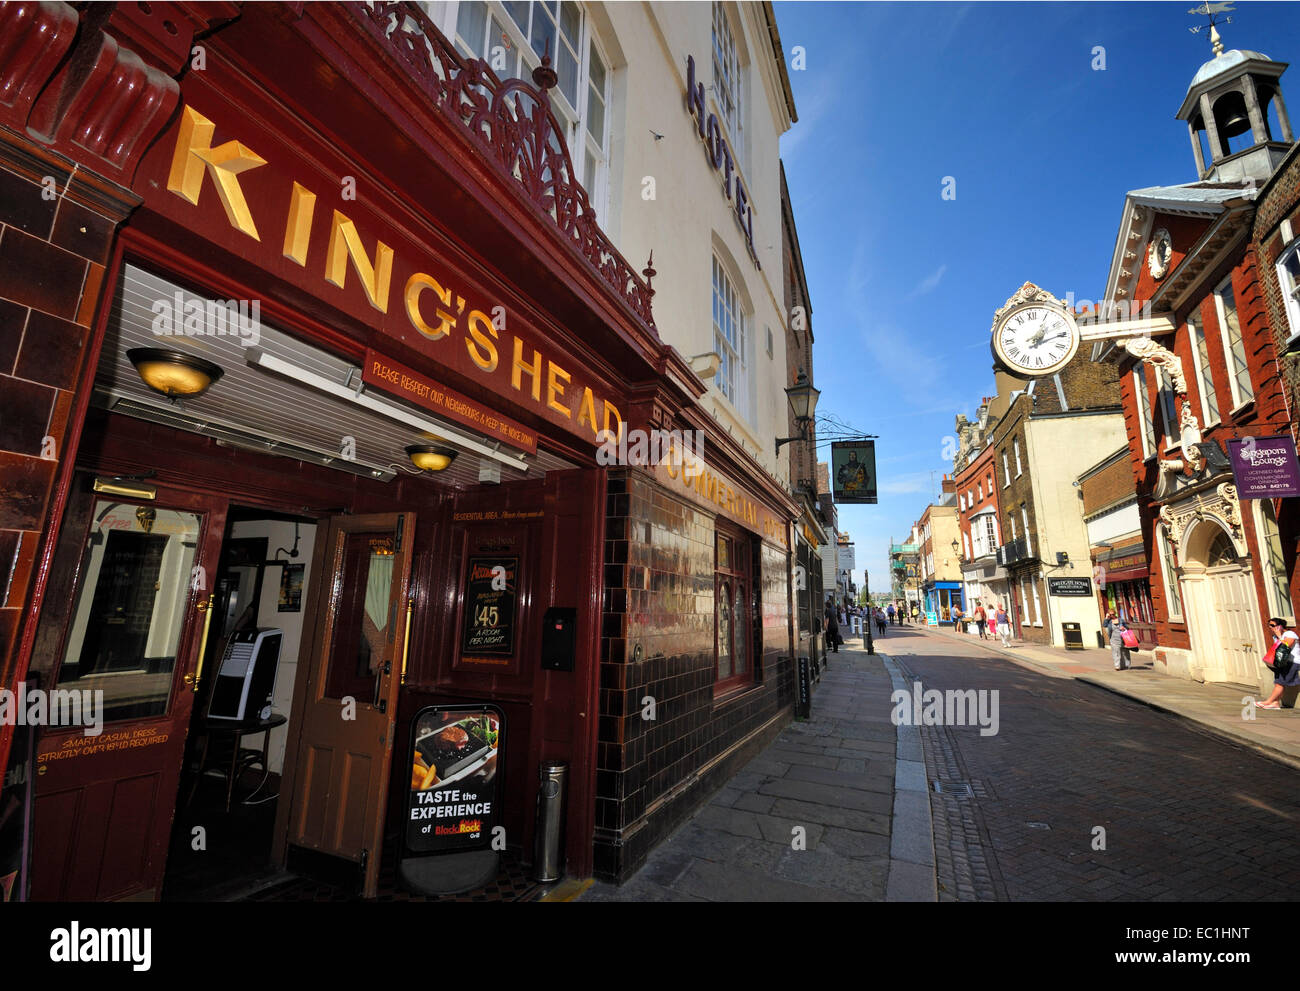 King's Head Dickens connection: the King's Head Hotel, High Street, Rochester, Kent, on the walls of which are to - Stock Image